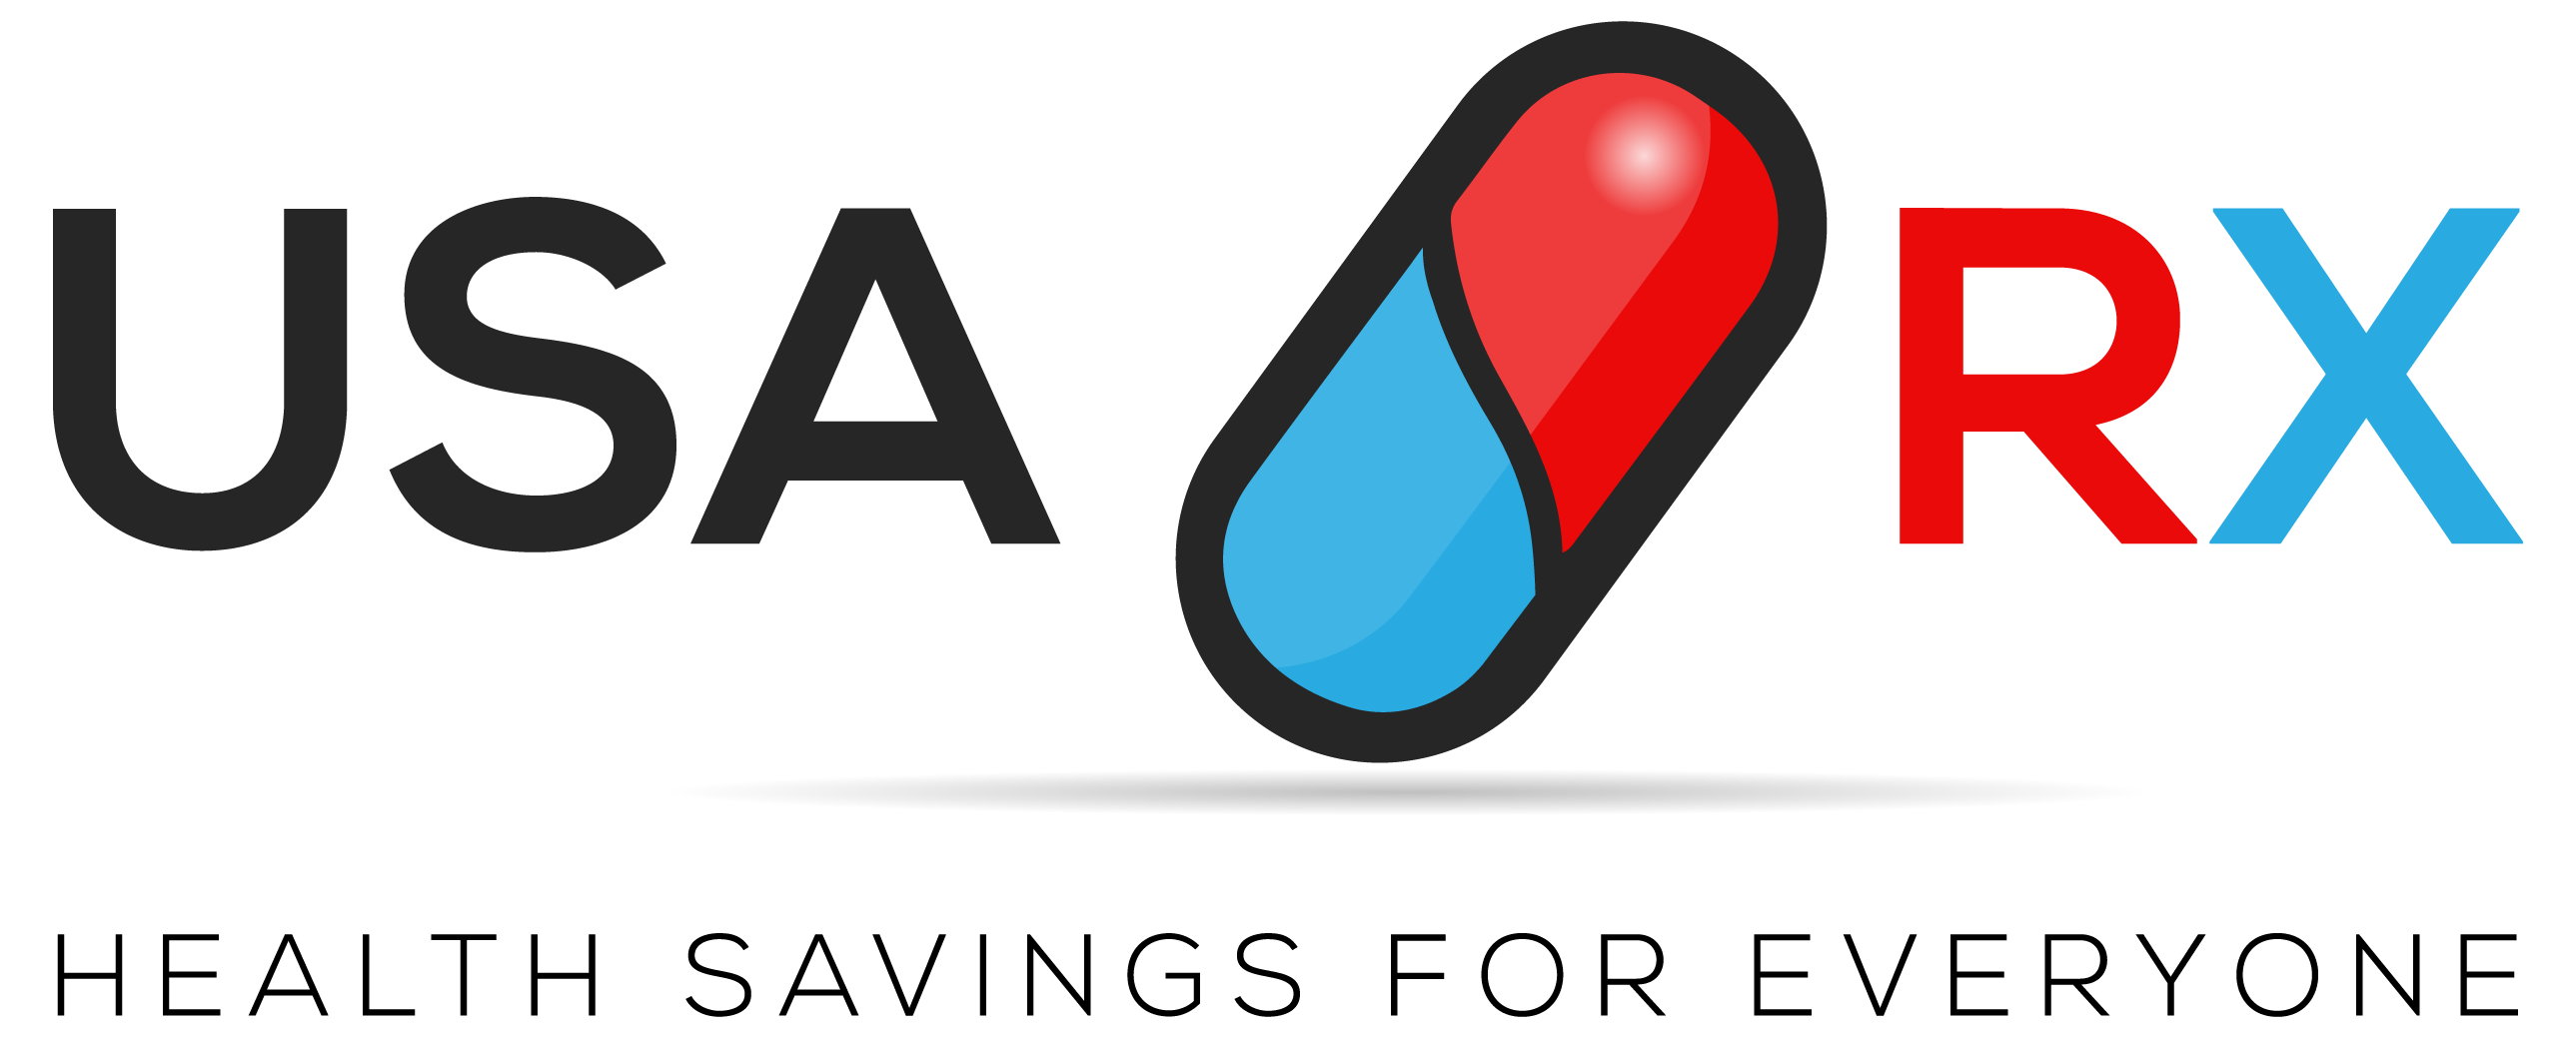 USA Rx's web applications are enabling US citizens to save money while purchasing prescription drugs